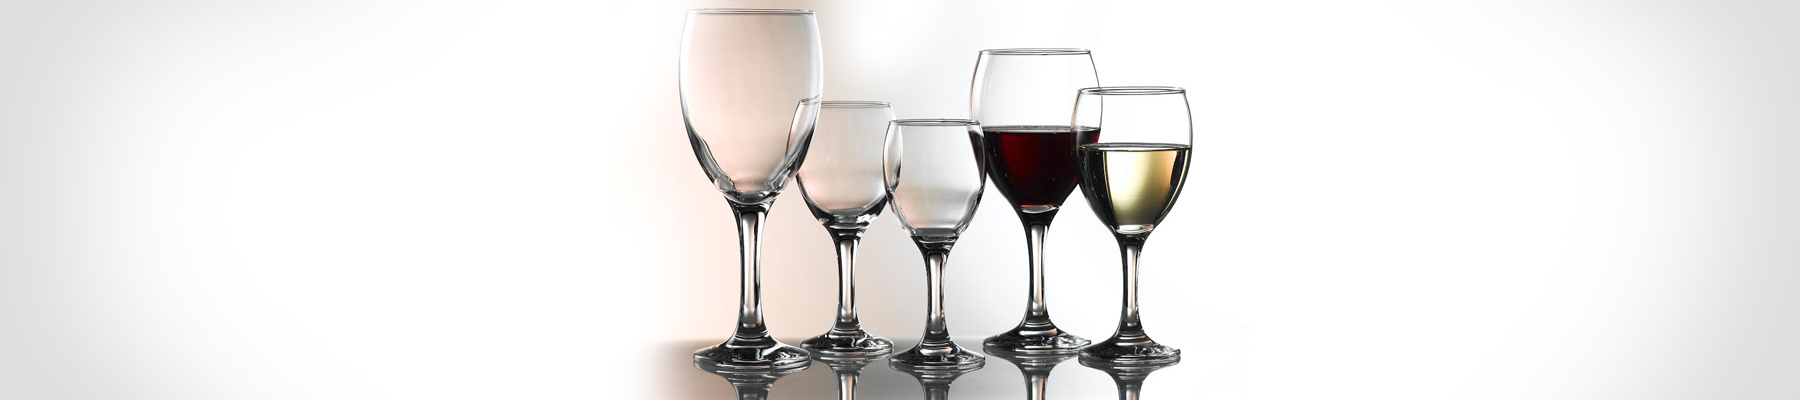 Empire Genware Wine Glasses